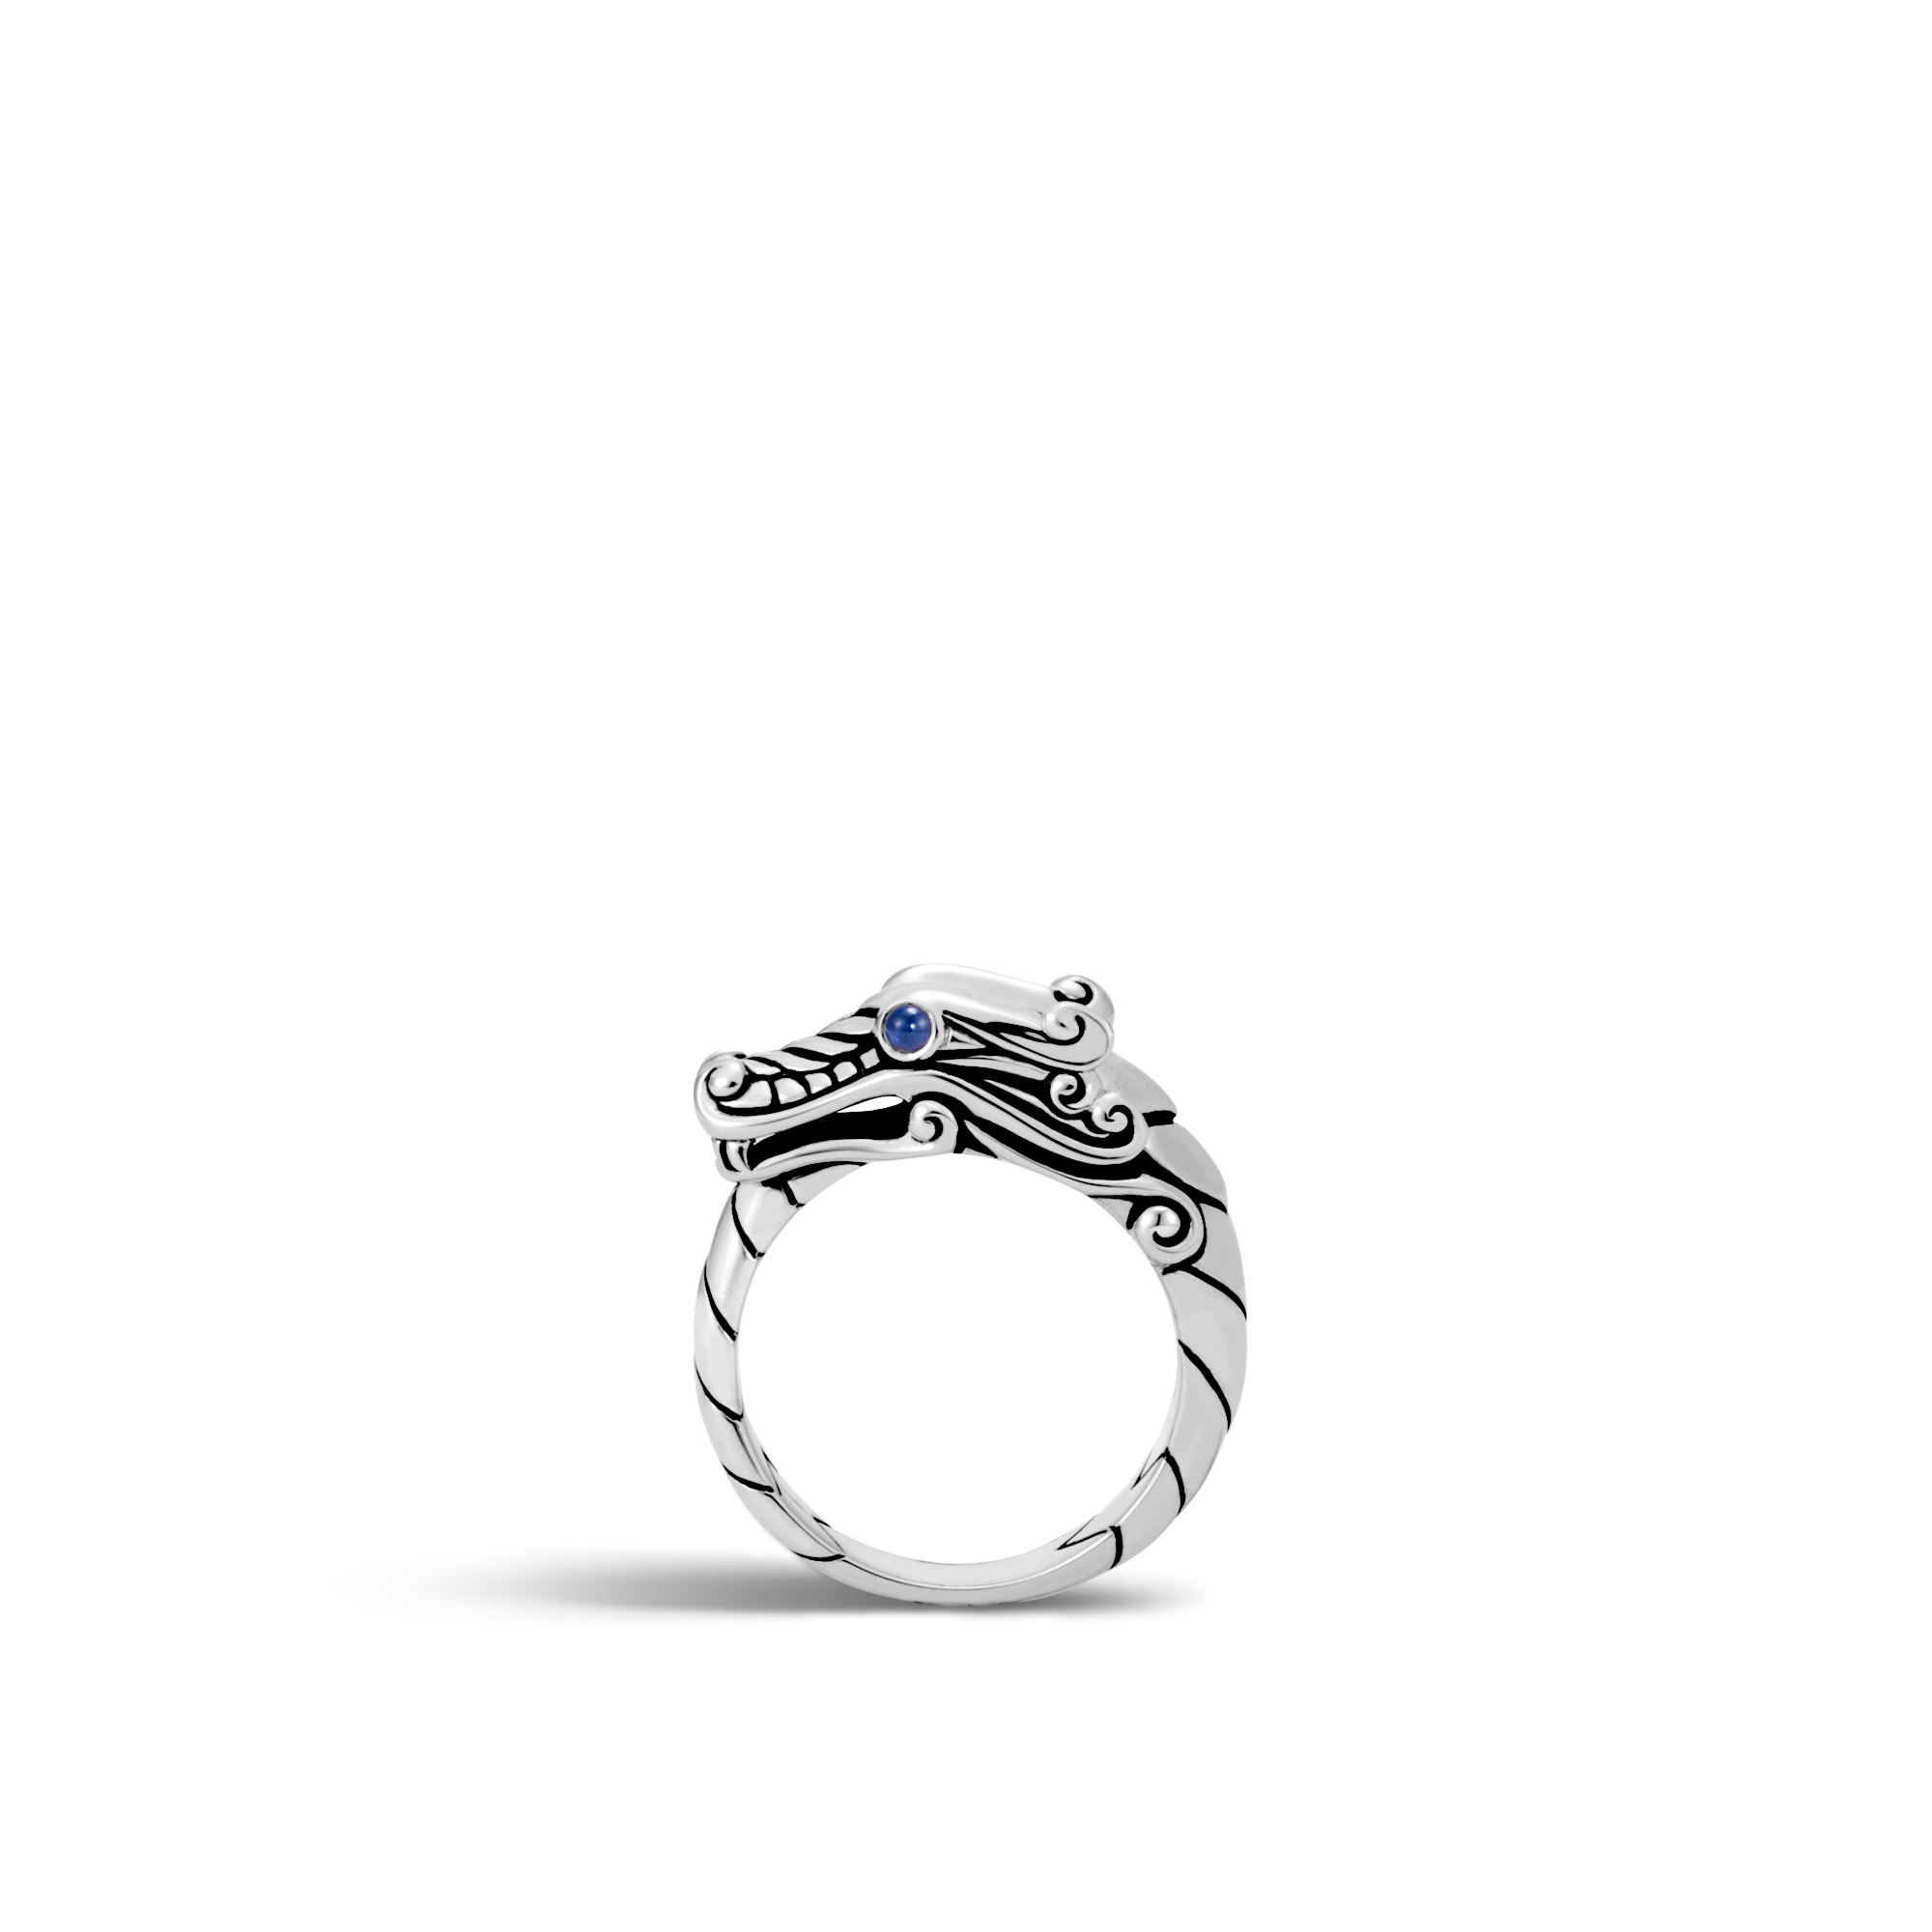 Legends Naga Ring in Silver, Blue Sapphire, large